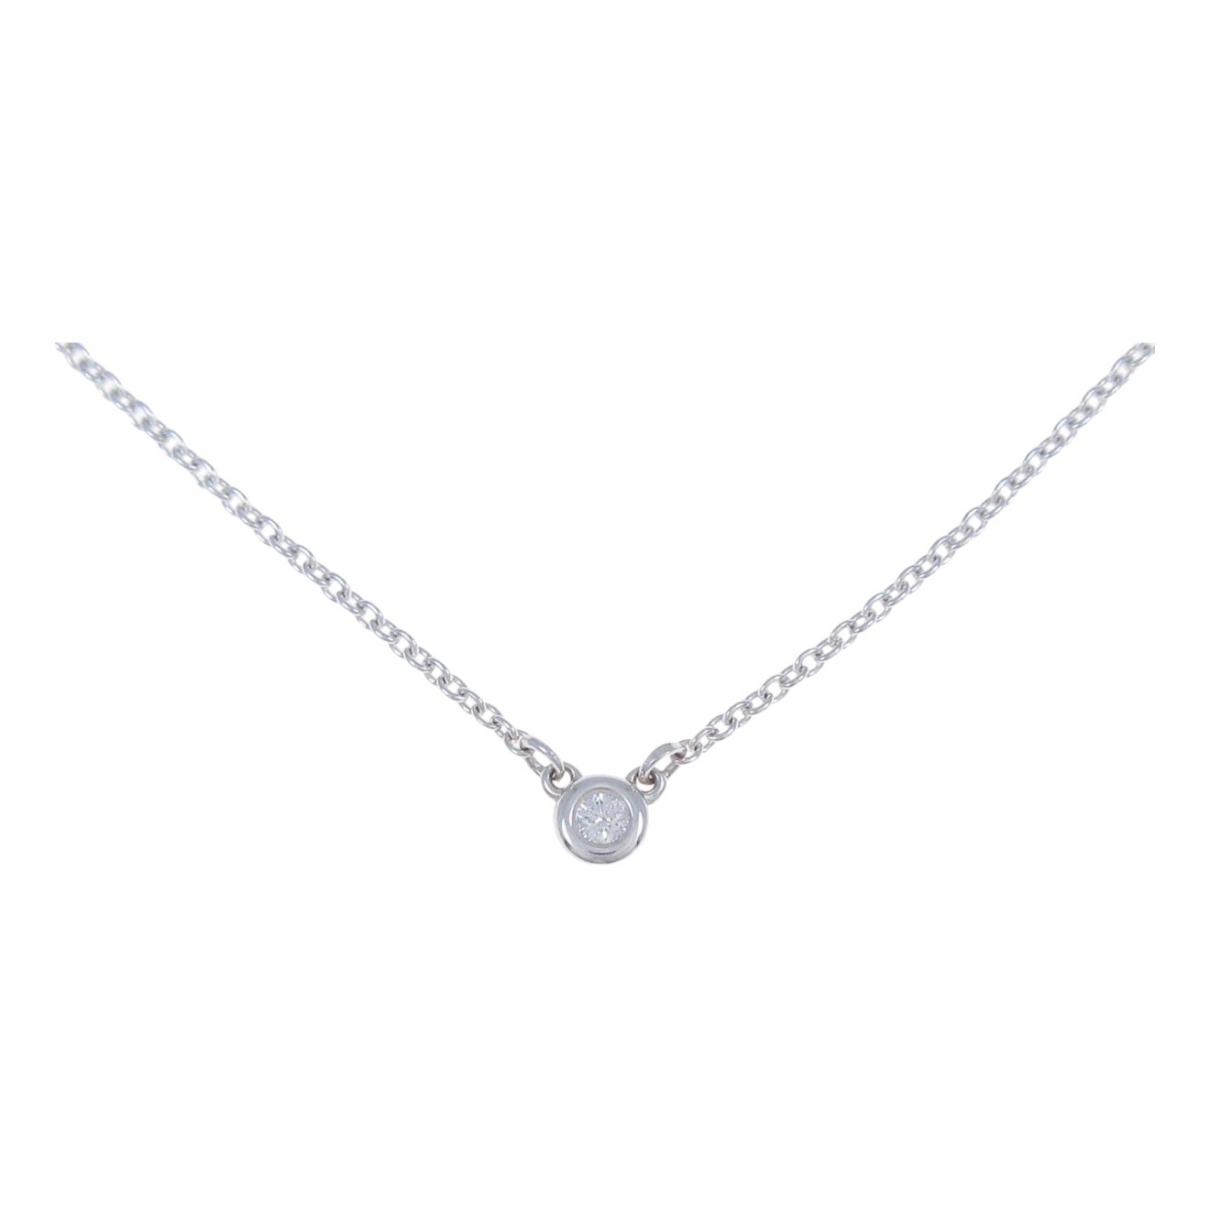 Tiffany & Co Elsa Peretti  Kette in  Silber Silber